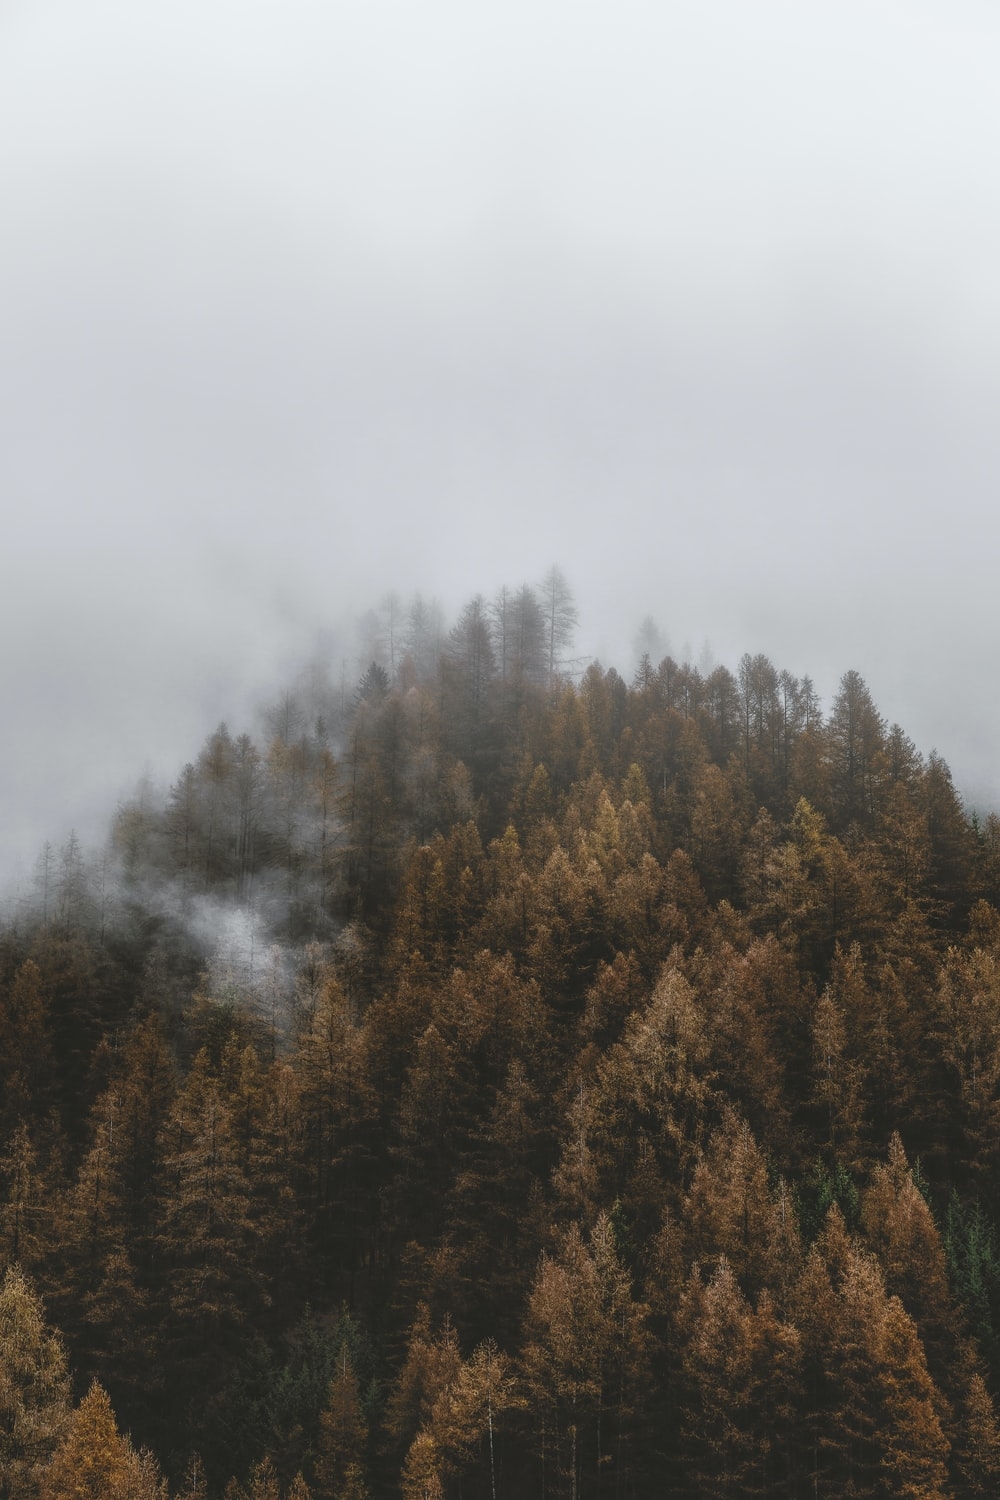 green and brown trees under white sky during daytime